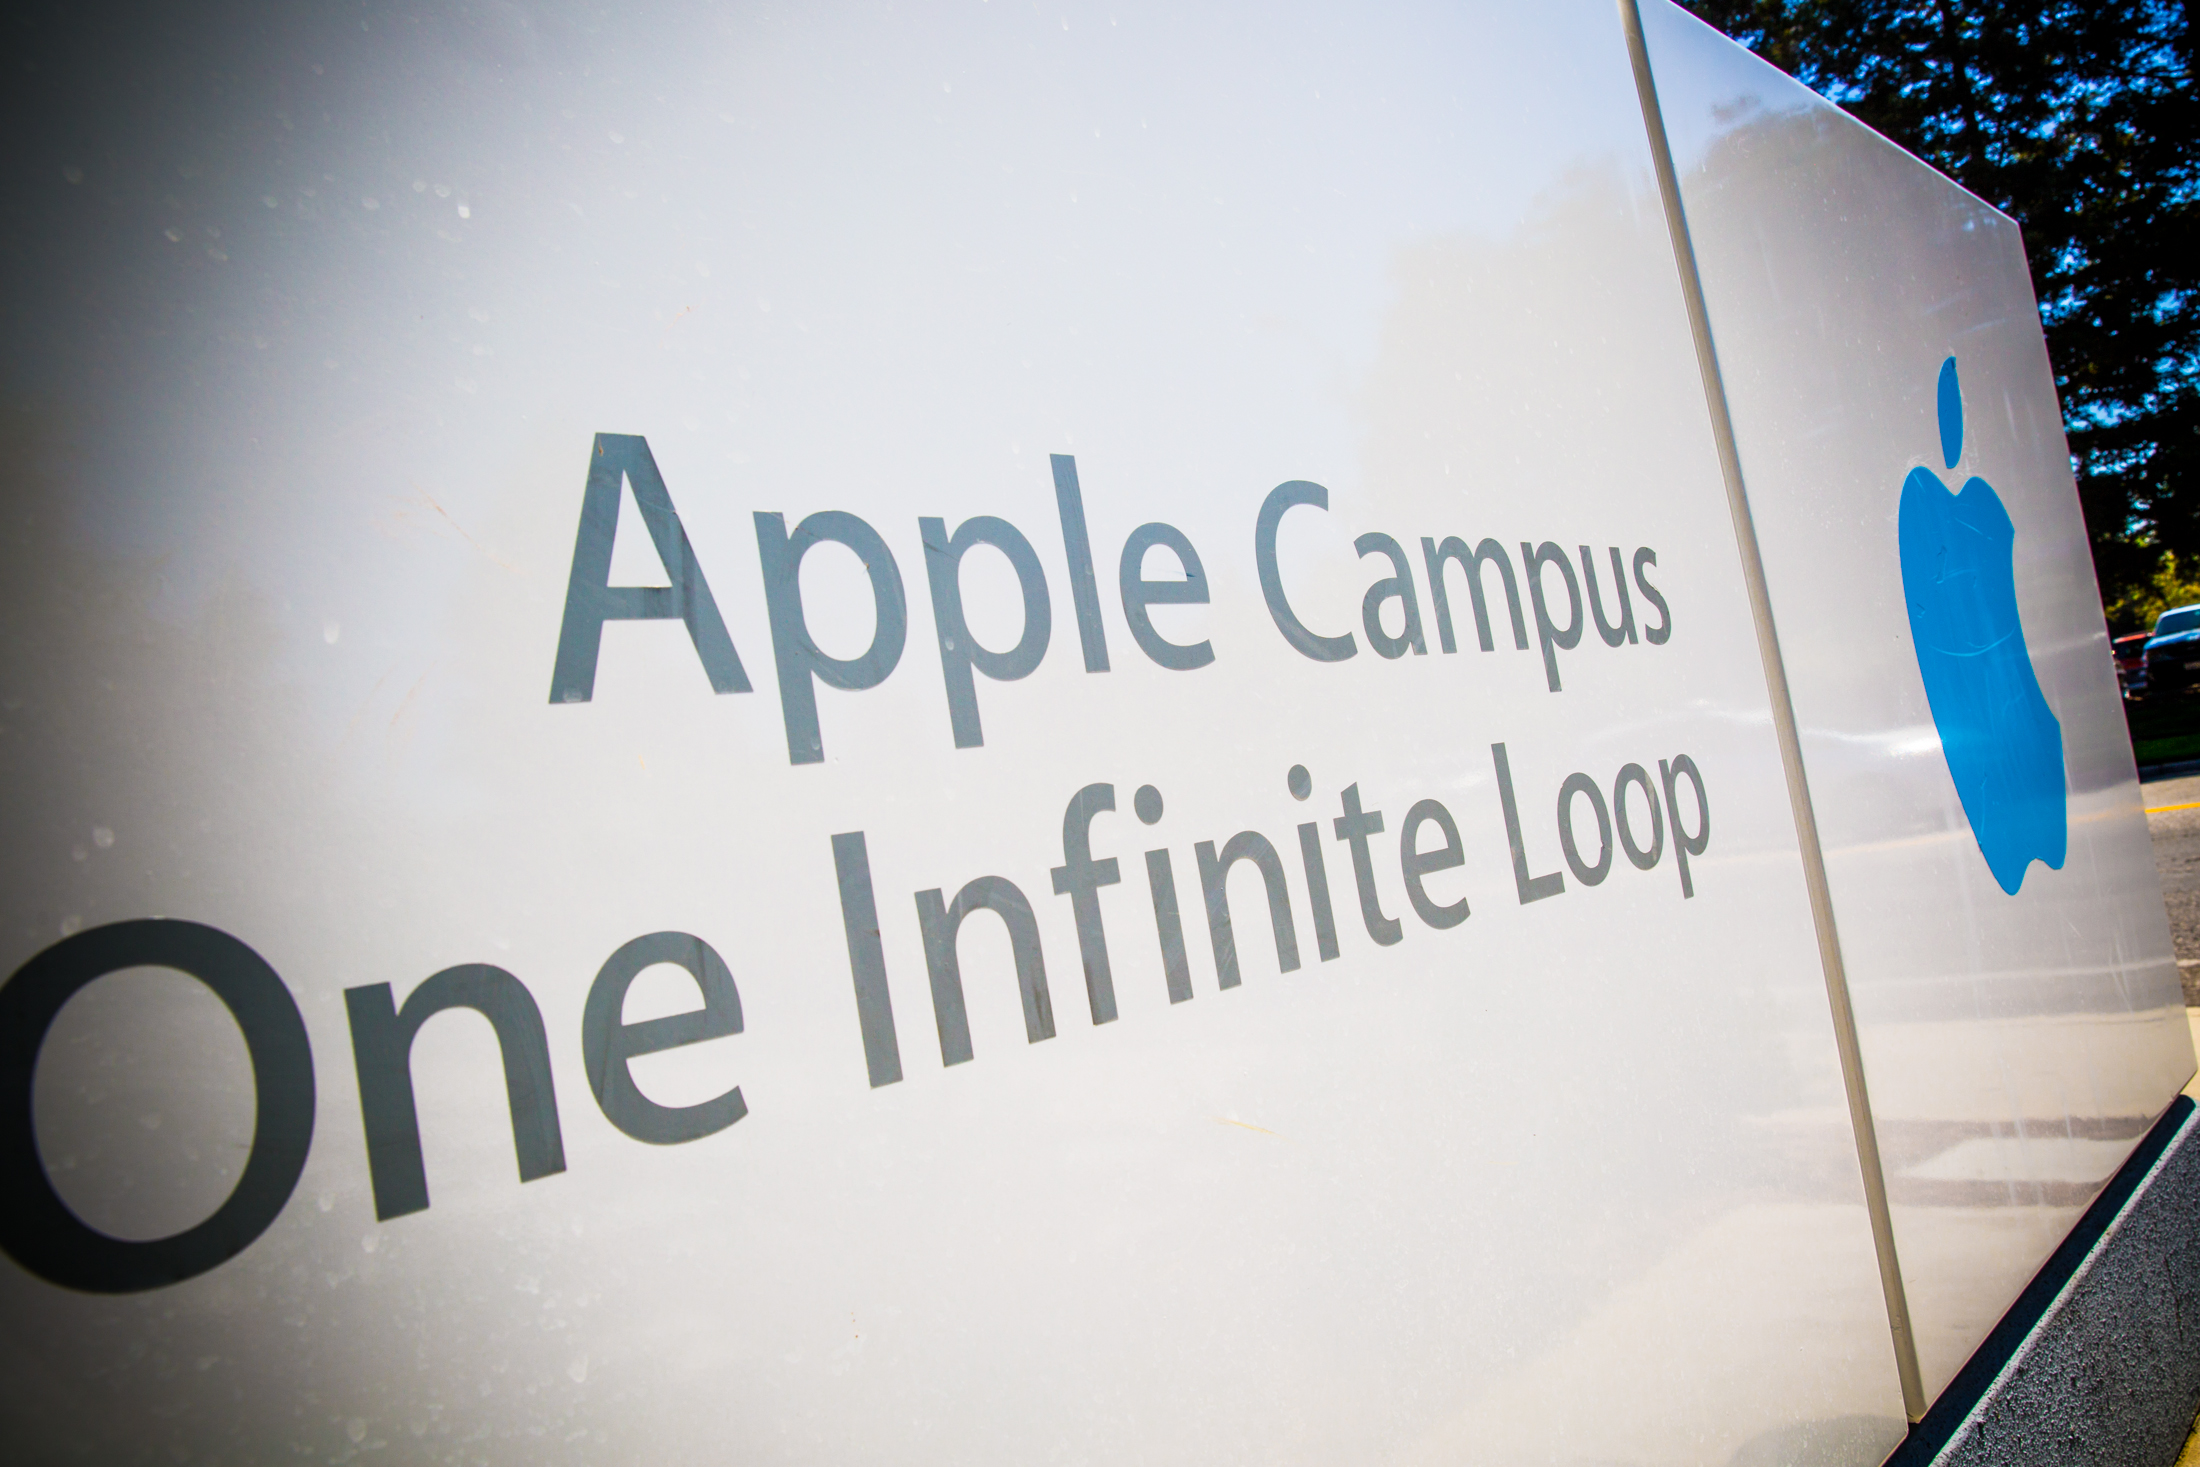 apple-hq-one-infinite-loop-4574.jpg